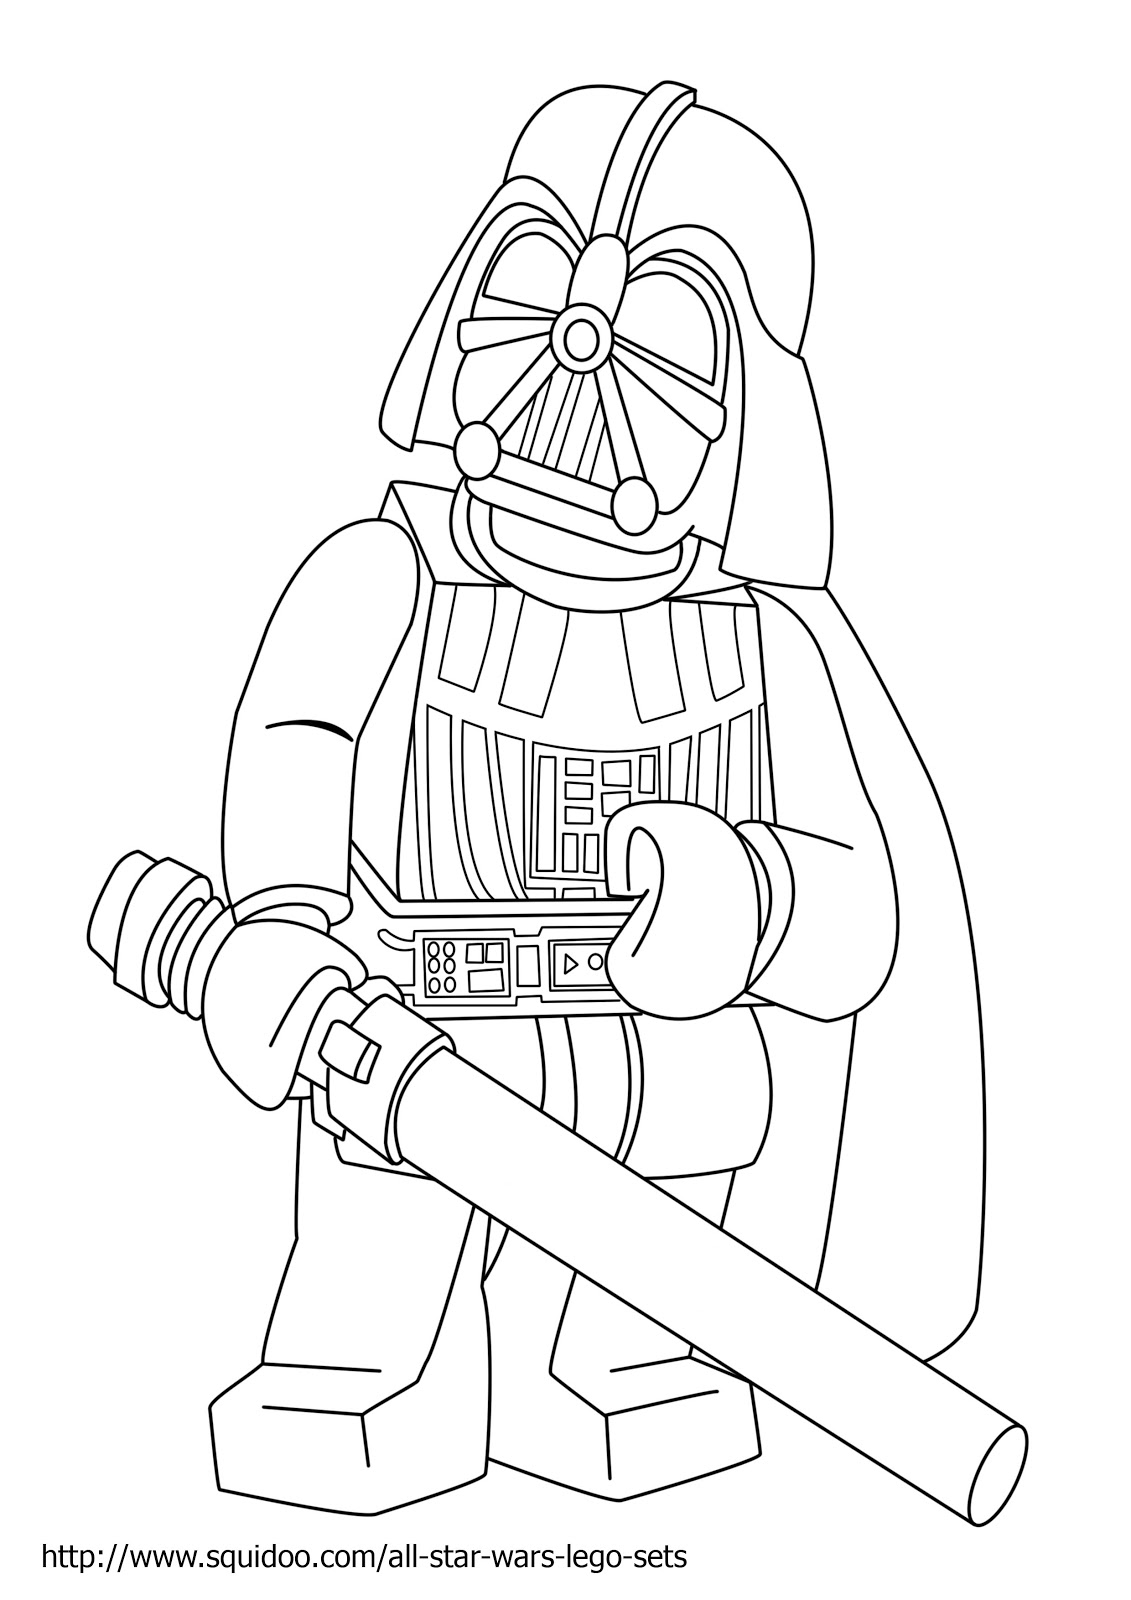 color pages star wars - pin ahsoka coloring colouring pages ajilbabcom portal on